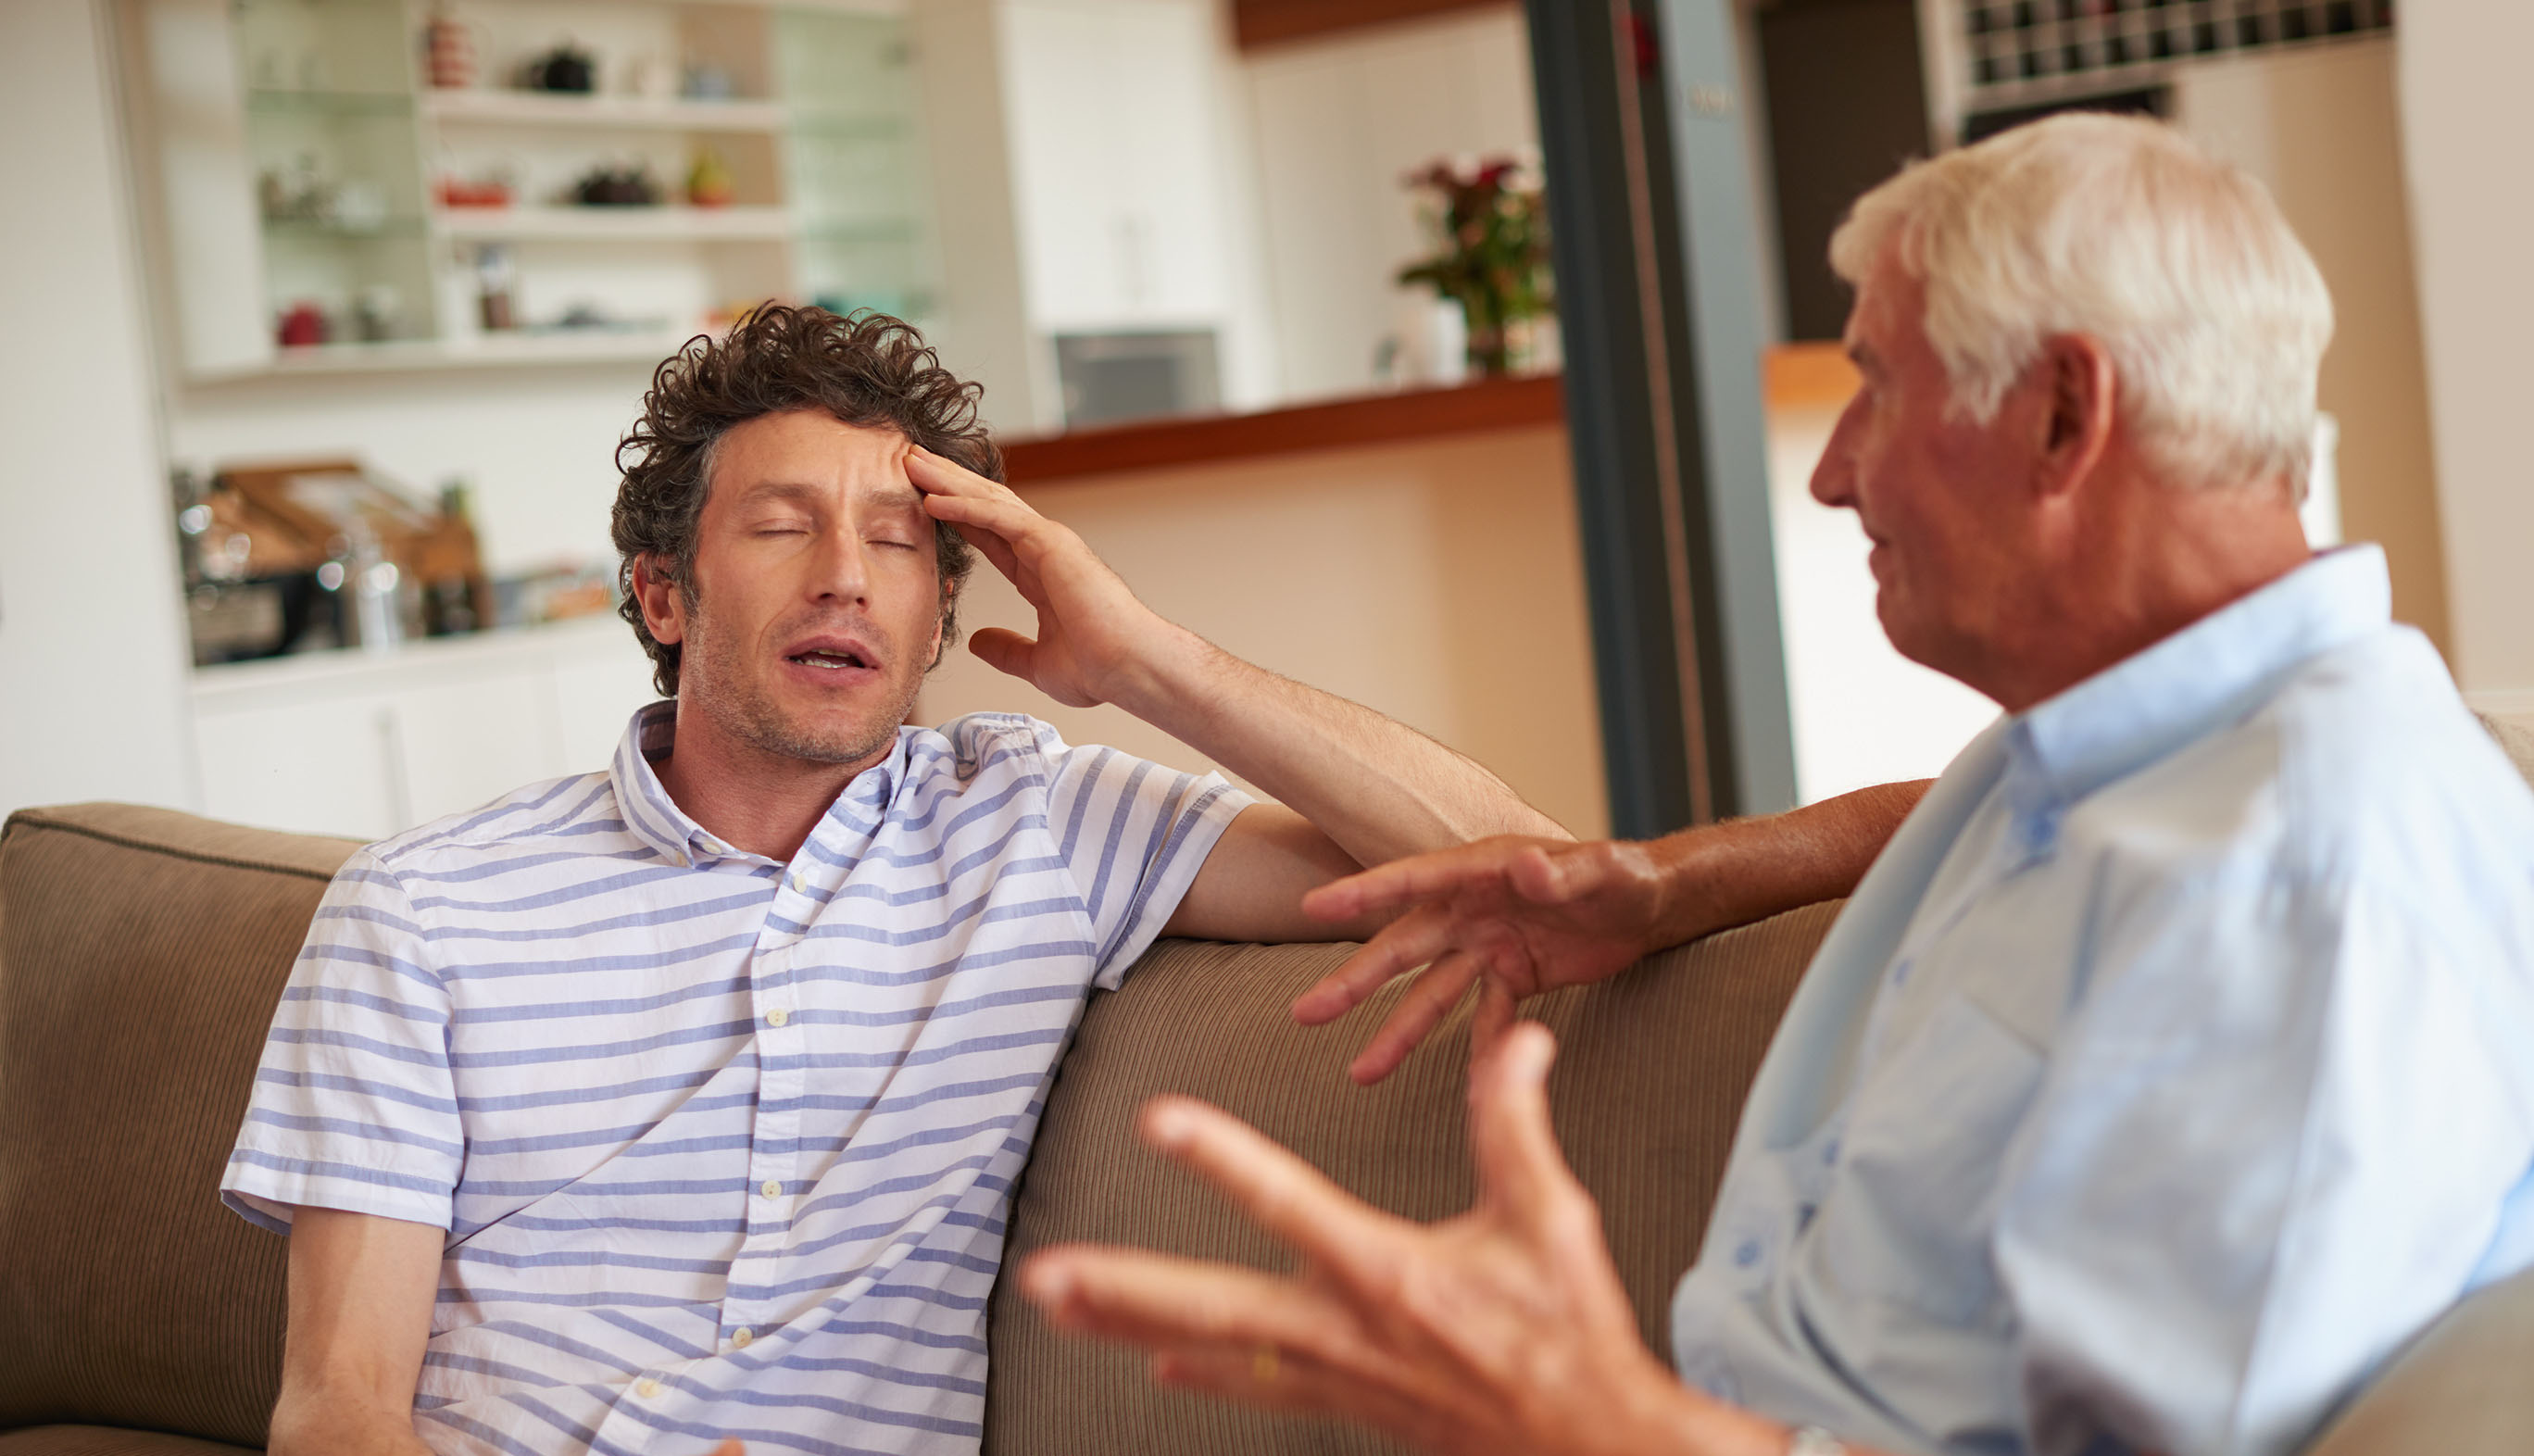 older man and son arguing on couch